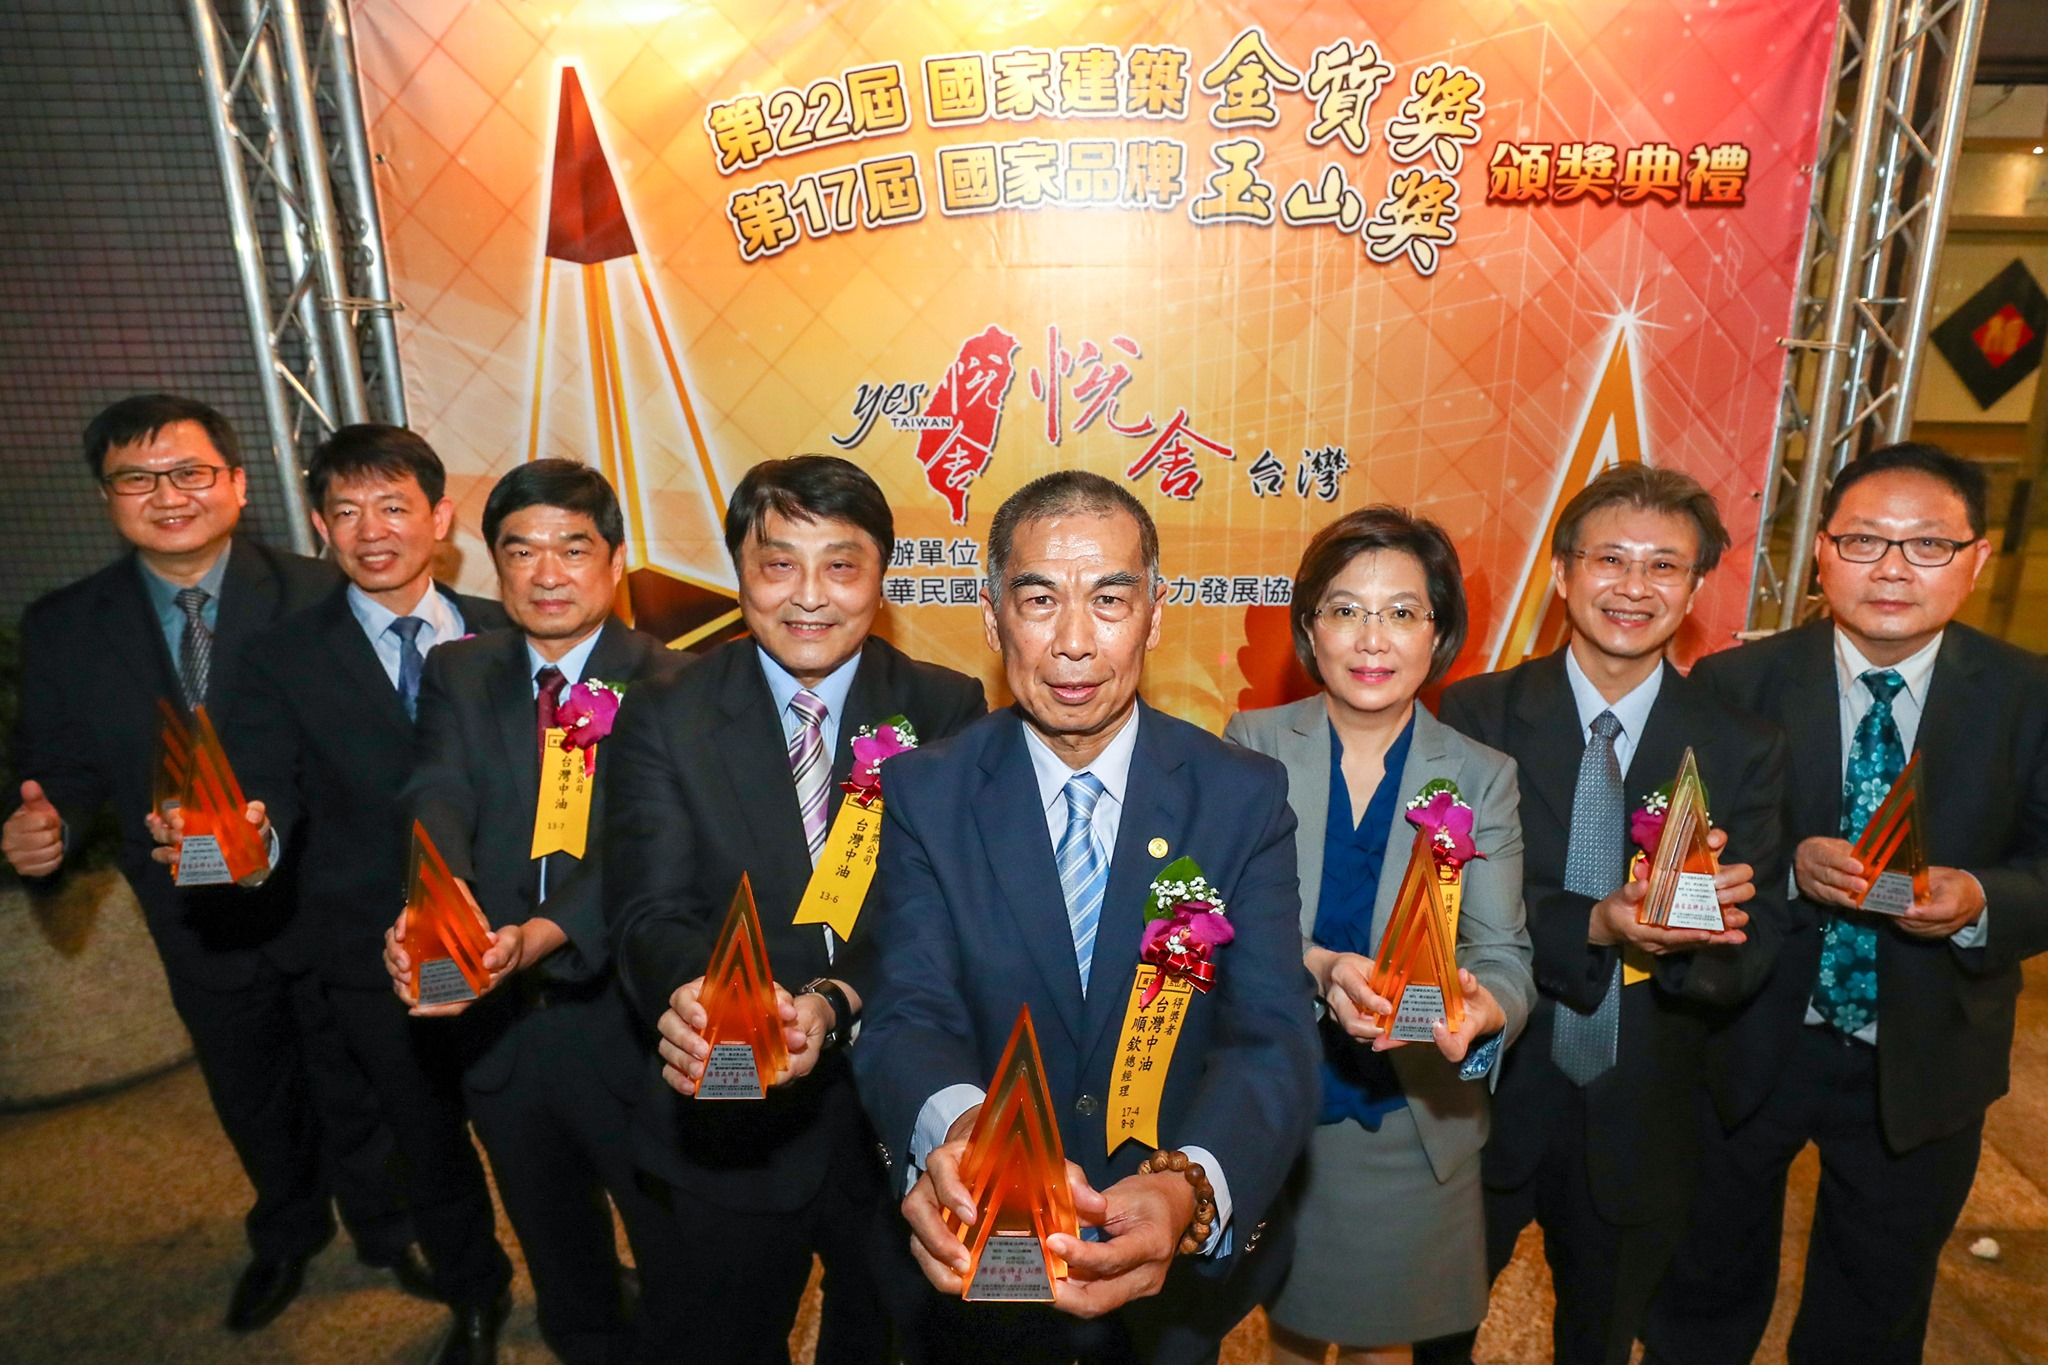 CPC Has Won Eight Prizes in the 17th National Brand Yushan Award, includes National First Prizes in Outstanding Enterprise and Best Product